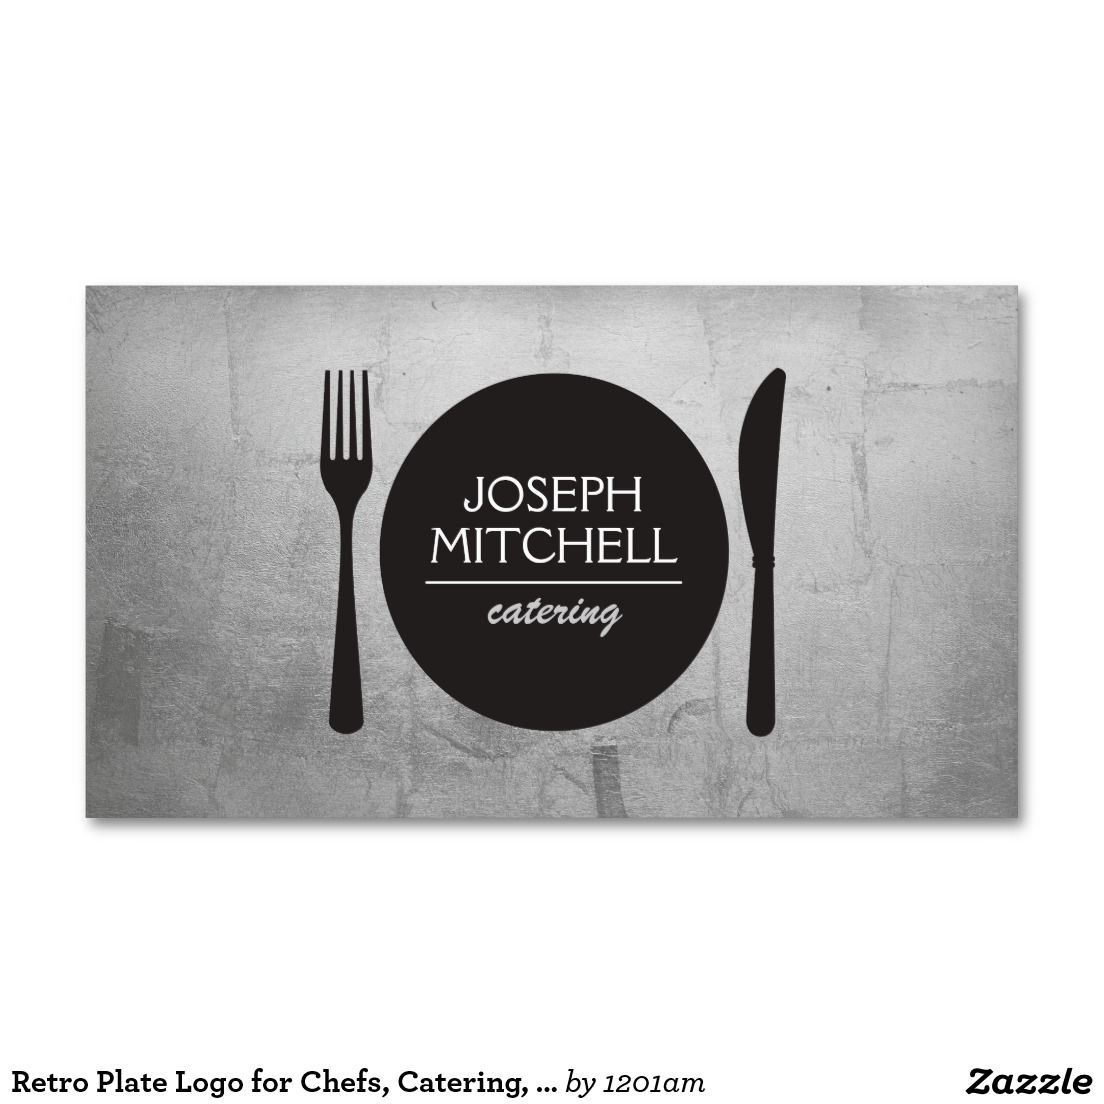 Retro Plate Logo for Chefs, Catering, Restaurants Business Card ...